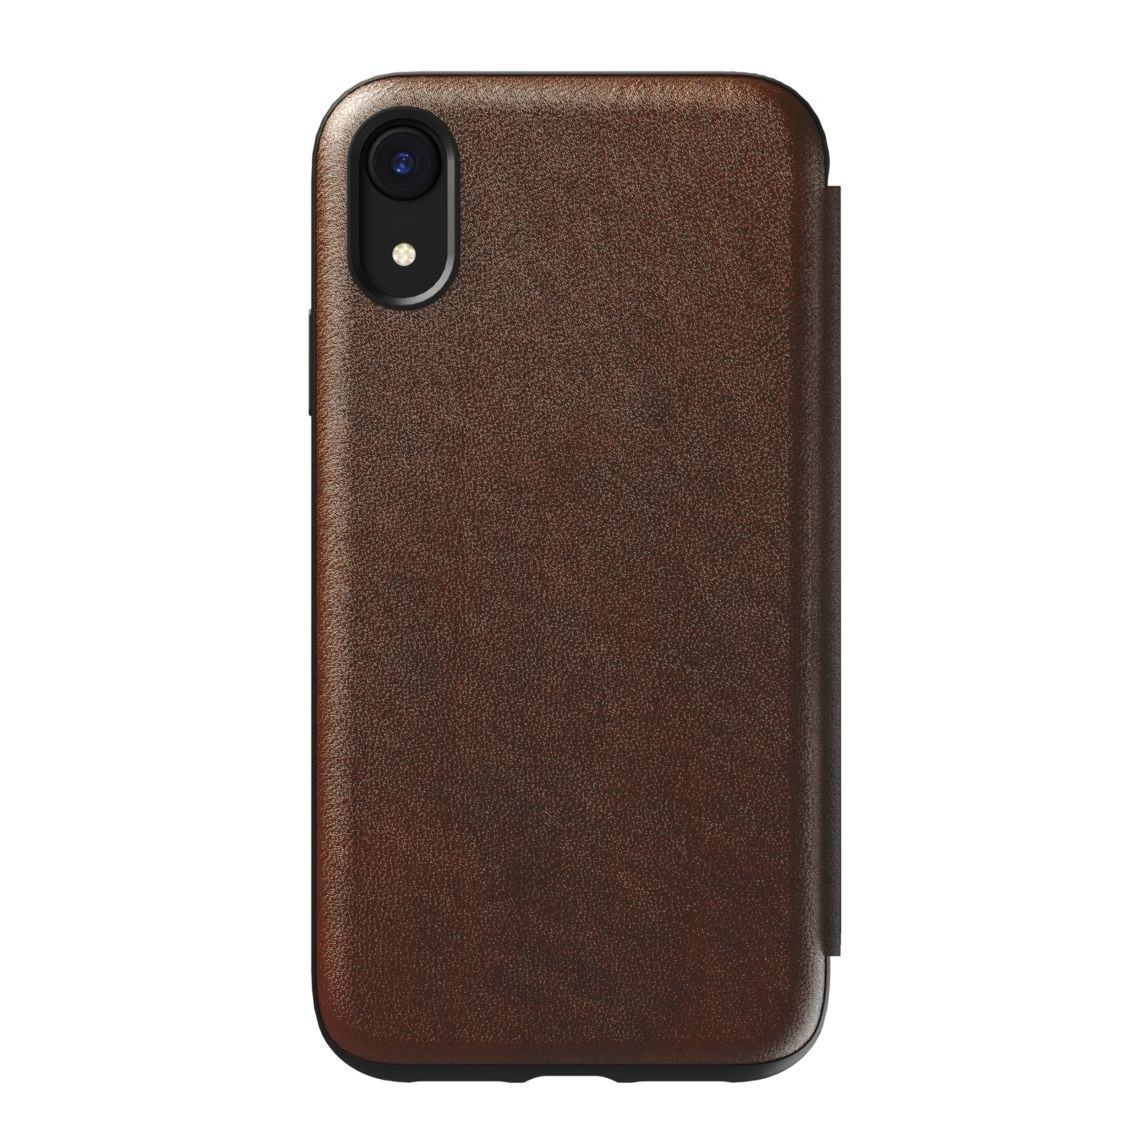 Nomad Horween Leather Rugged Tri-Folio for iPhone XR - Rustic Brown, NM21QR0H50